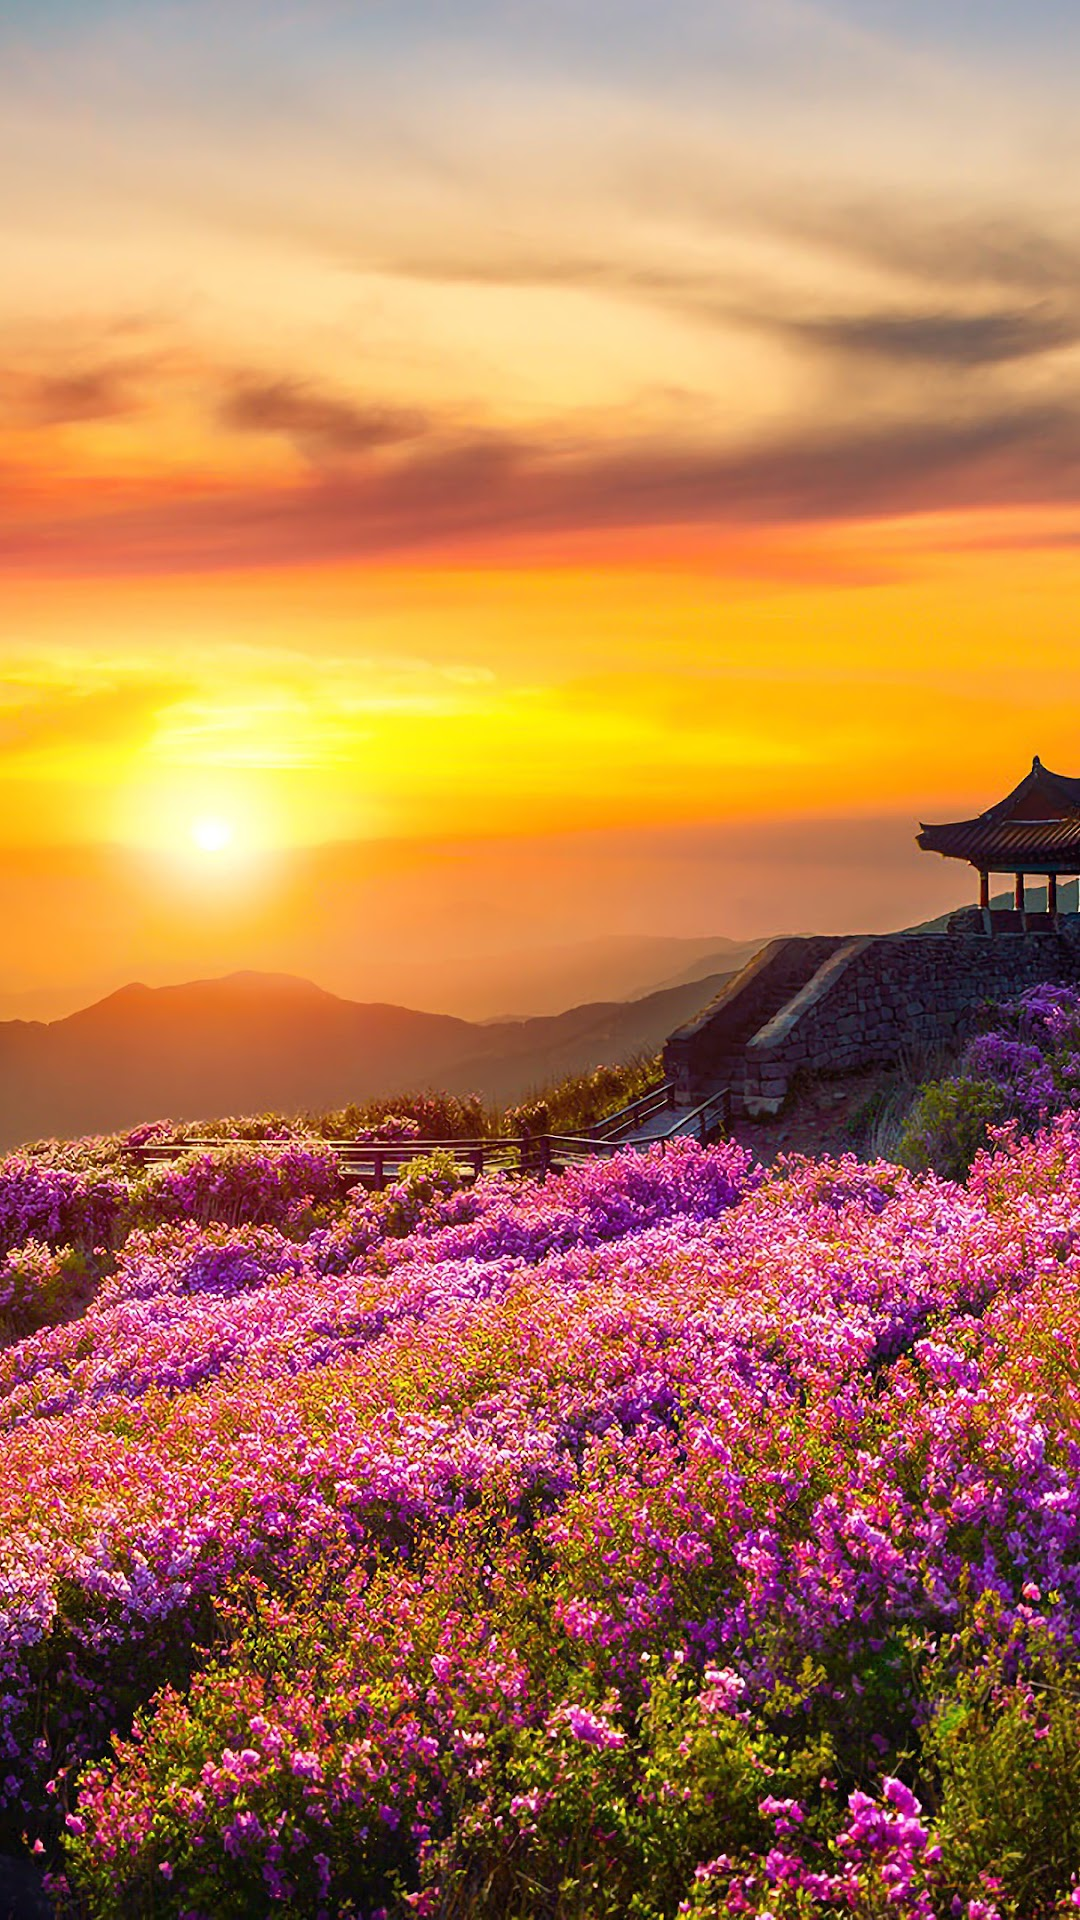 Flower Mountain Nature Landscape Sunset Scnery 4k Wallpaper 162